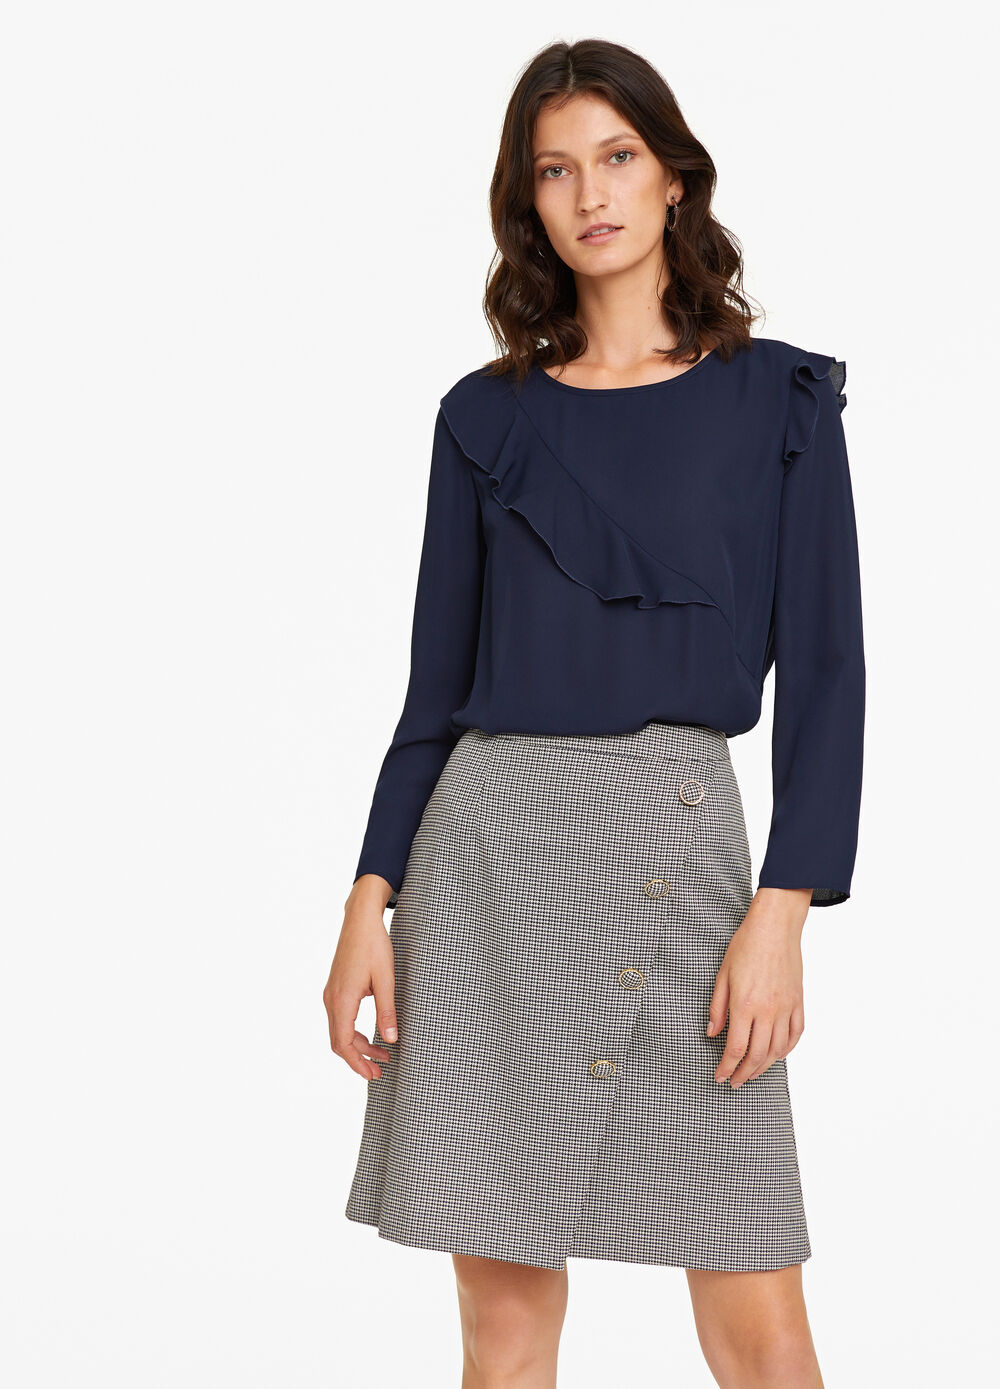 Blouse with round neck and flounce